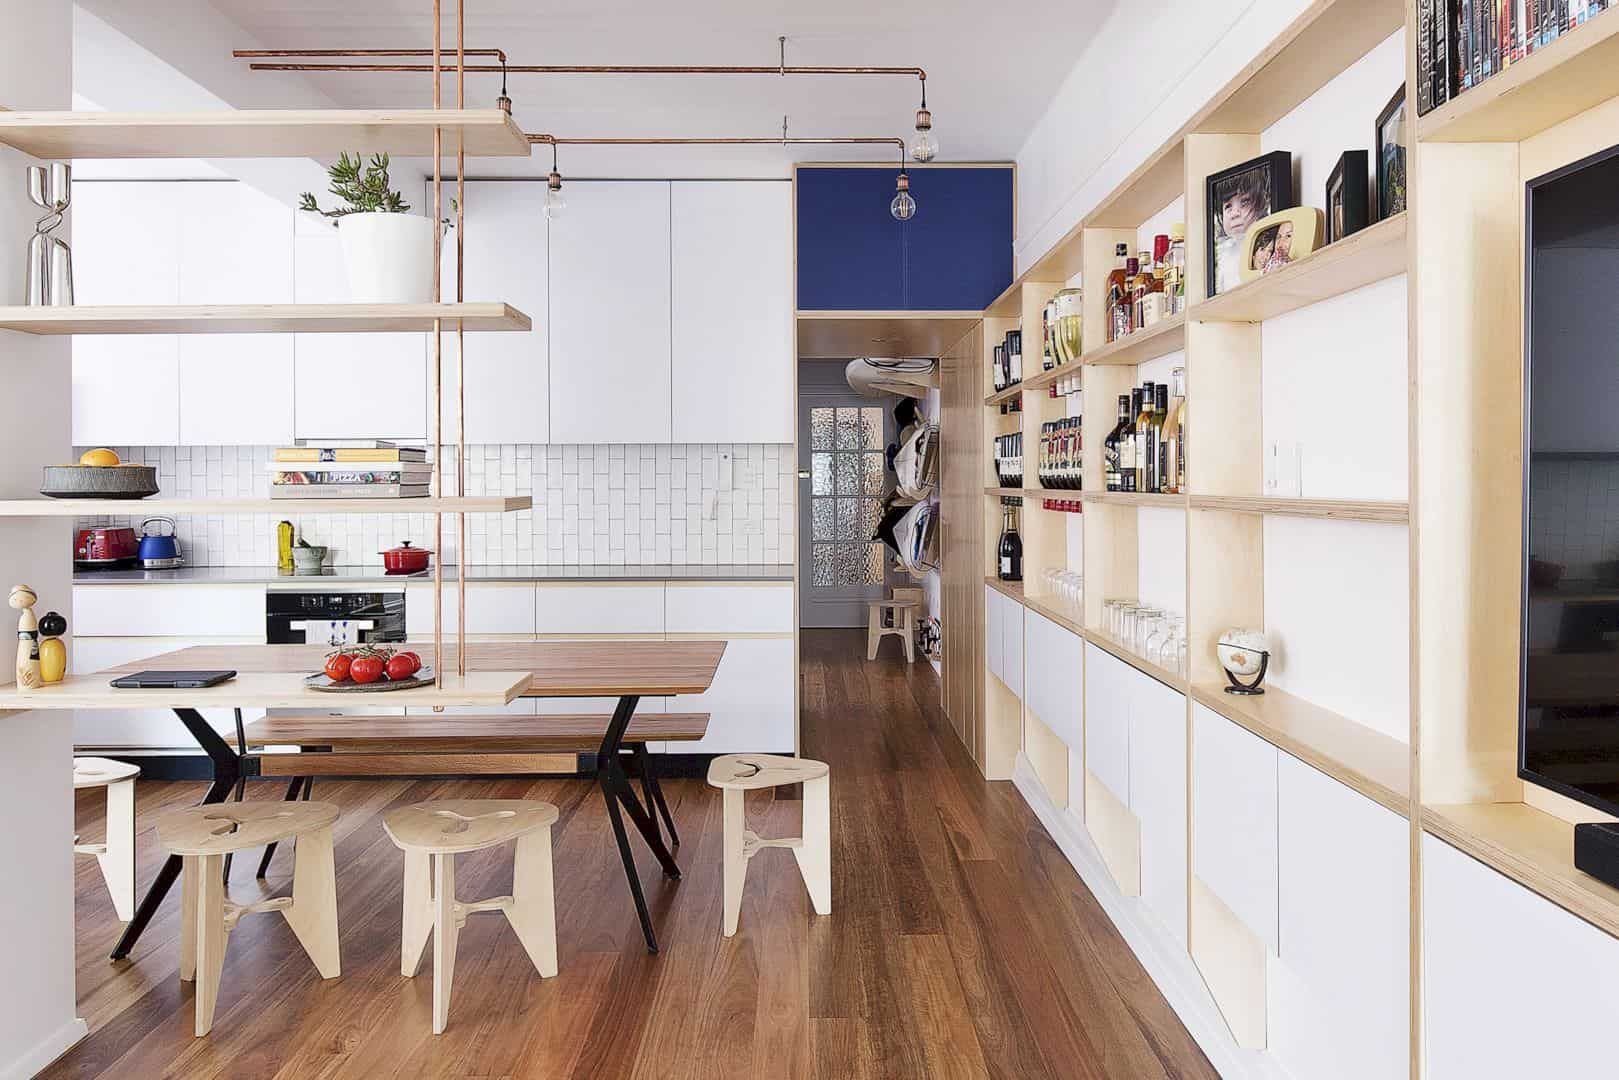 Portal House Manly A Contemporary Home Design With A Bright And